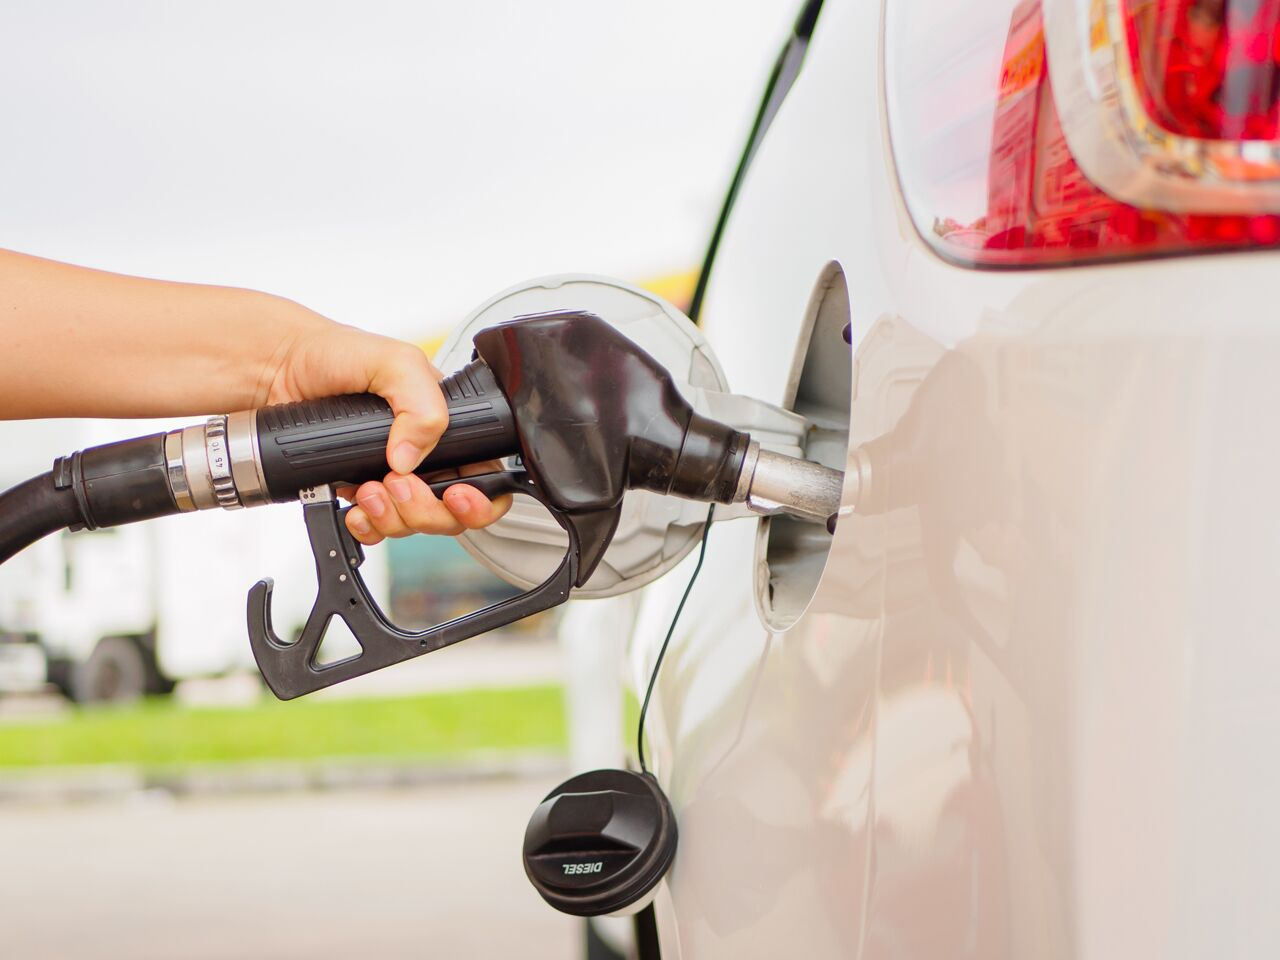 Hand holding black gas pump while pumping fuel into white vehicle.